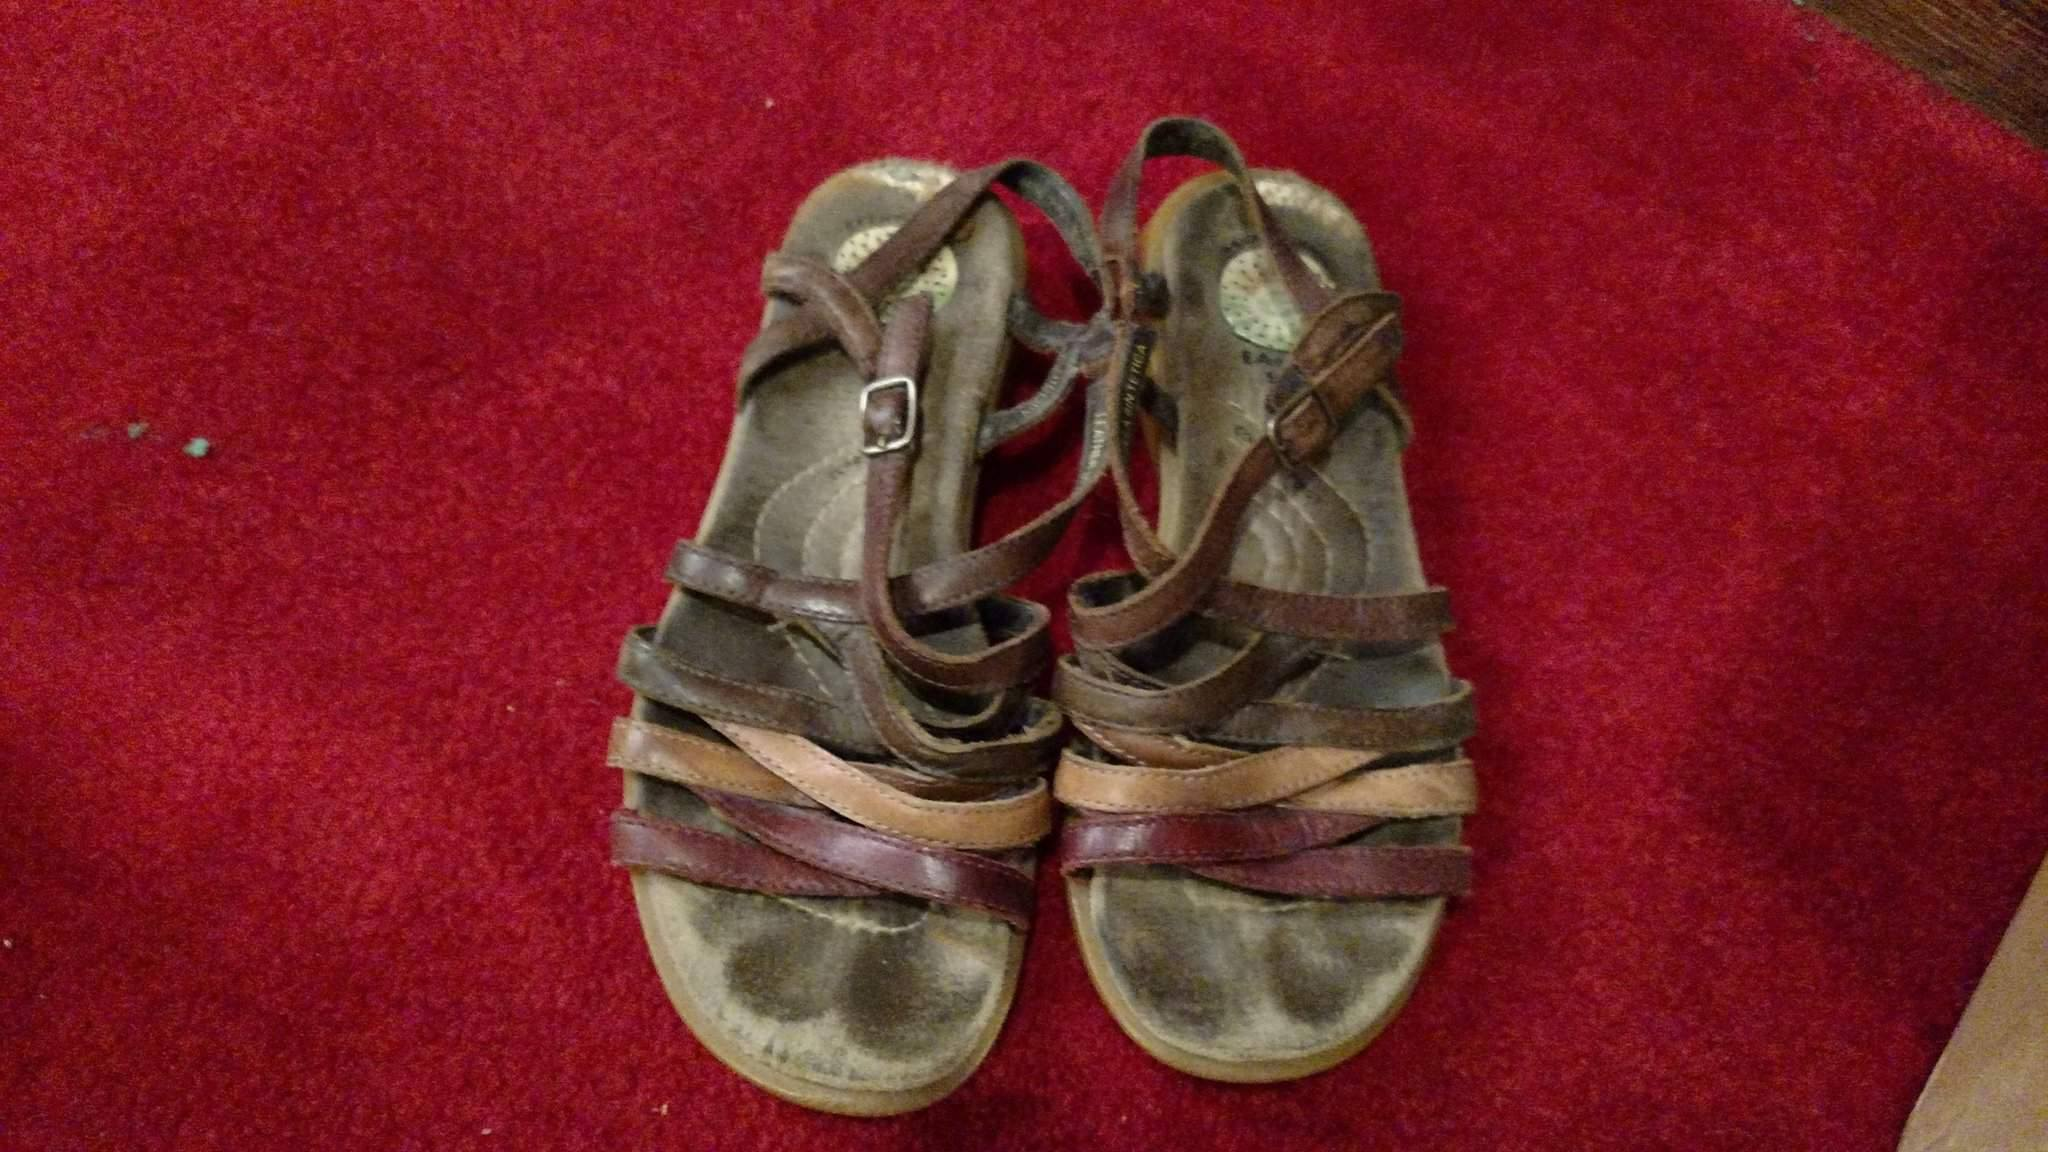 """Ninevite sandals"" Photo credit: Leah D. Schade. All rights reserved."